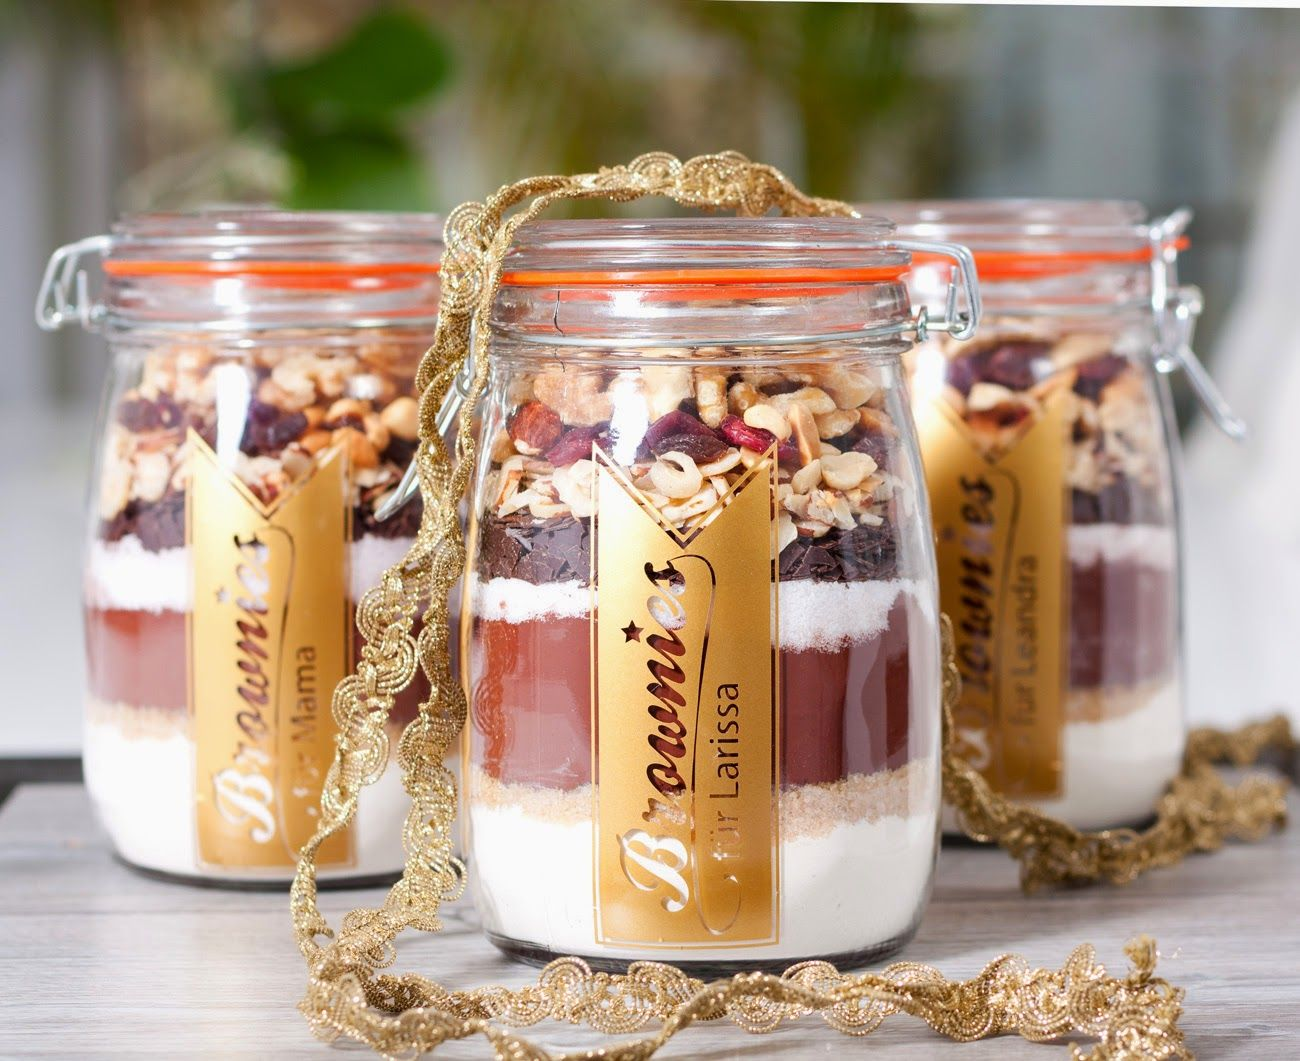 Glücksfinder Backmischung Im Glas Für Schokoladige Brownies Ostergeschenk Brownies In A Jar Diy Kitchen Gifts Edible Gifts